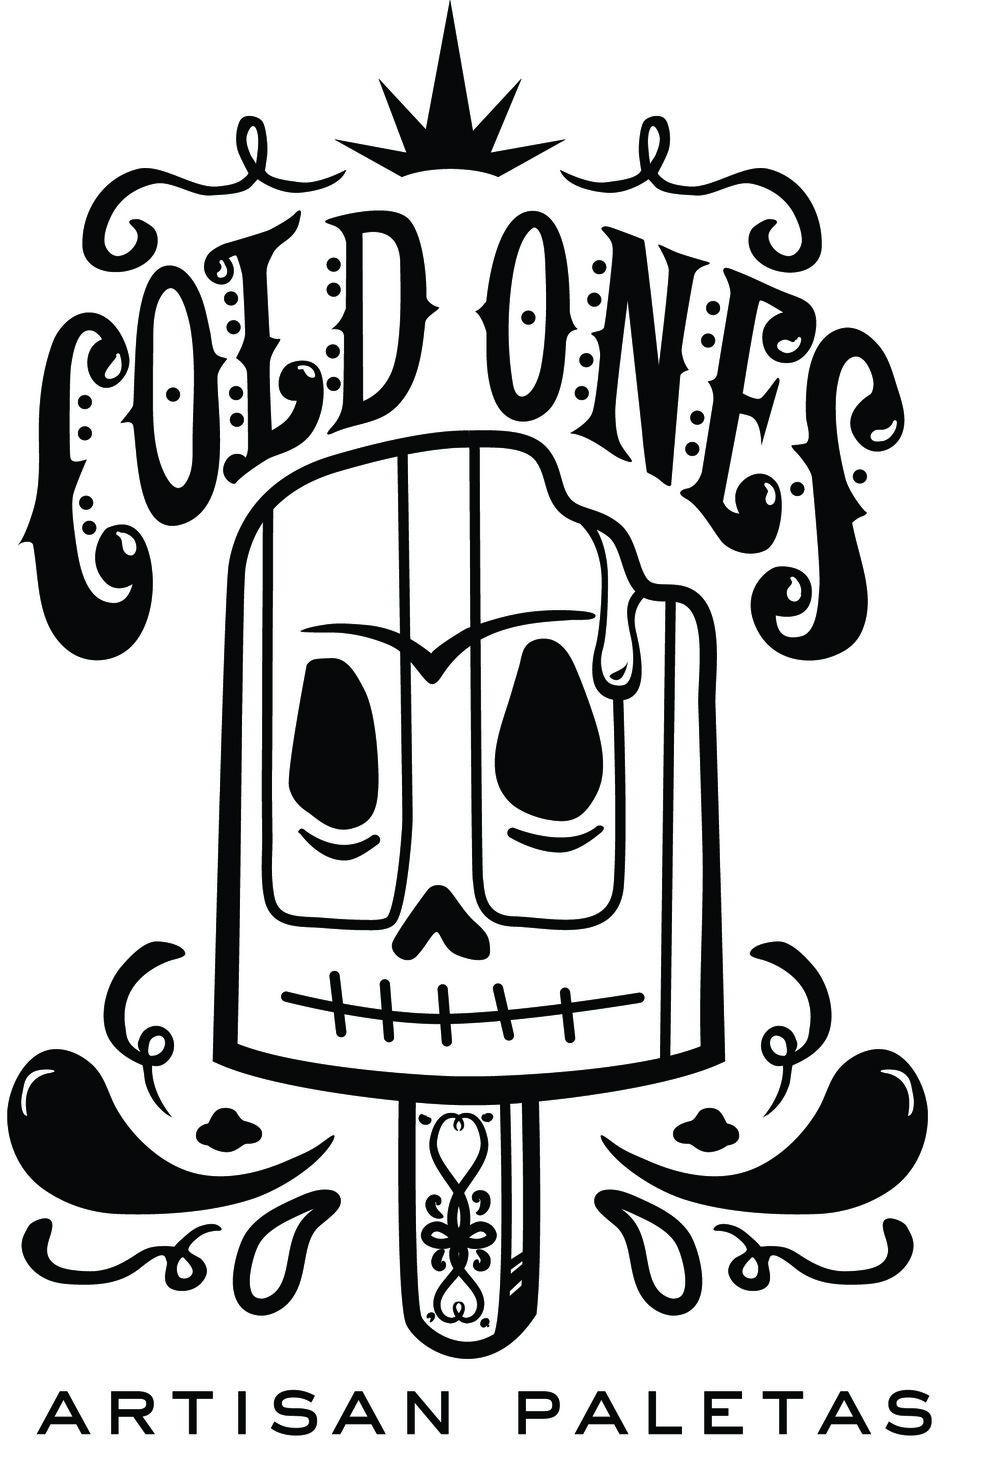 cold ones logo.jpg